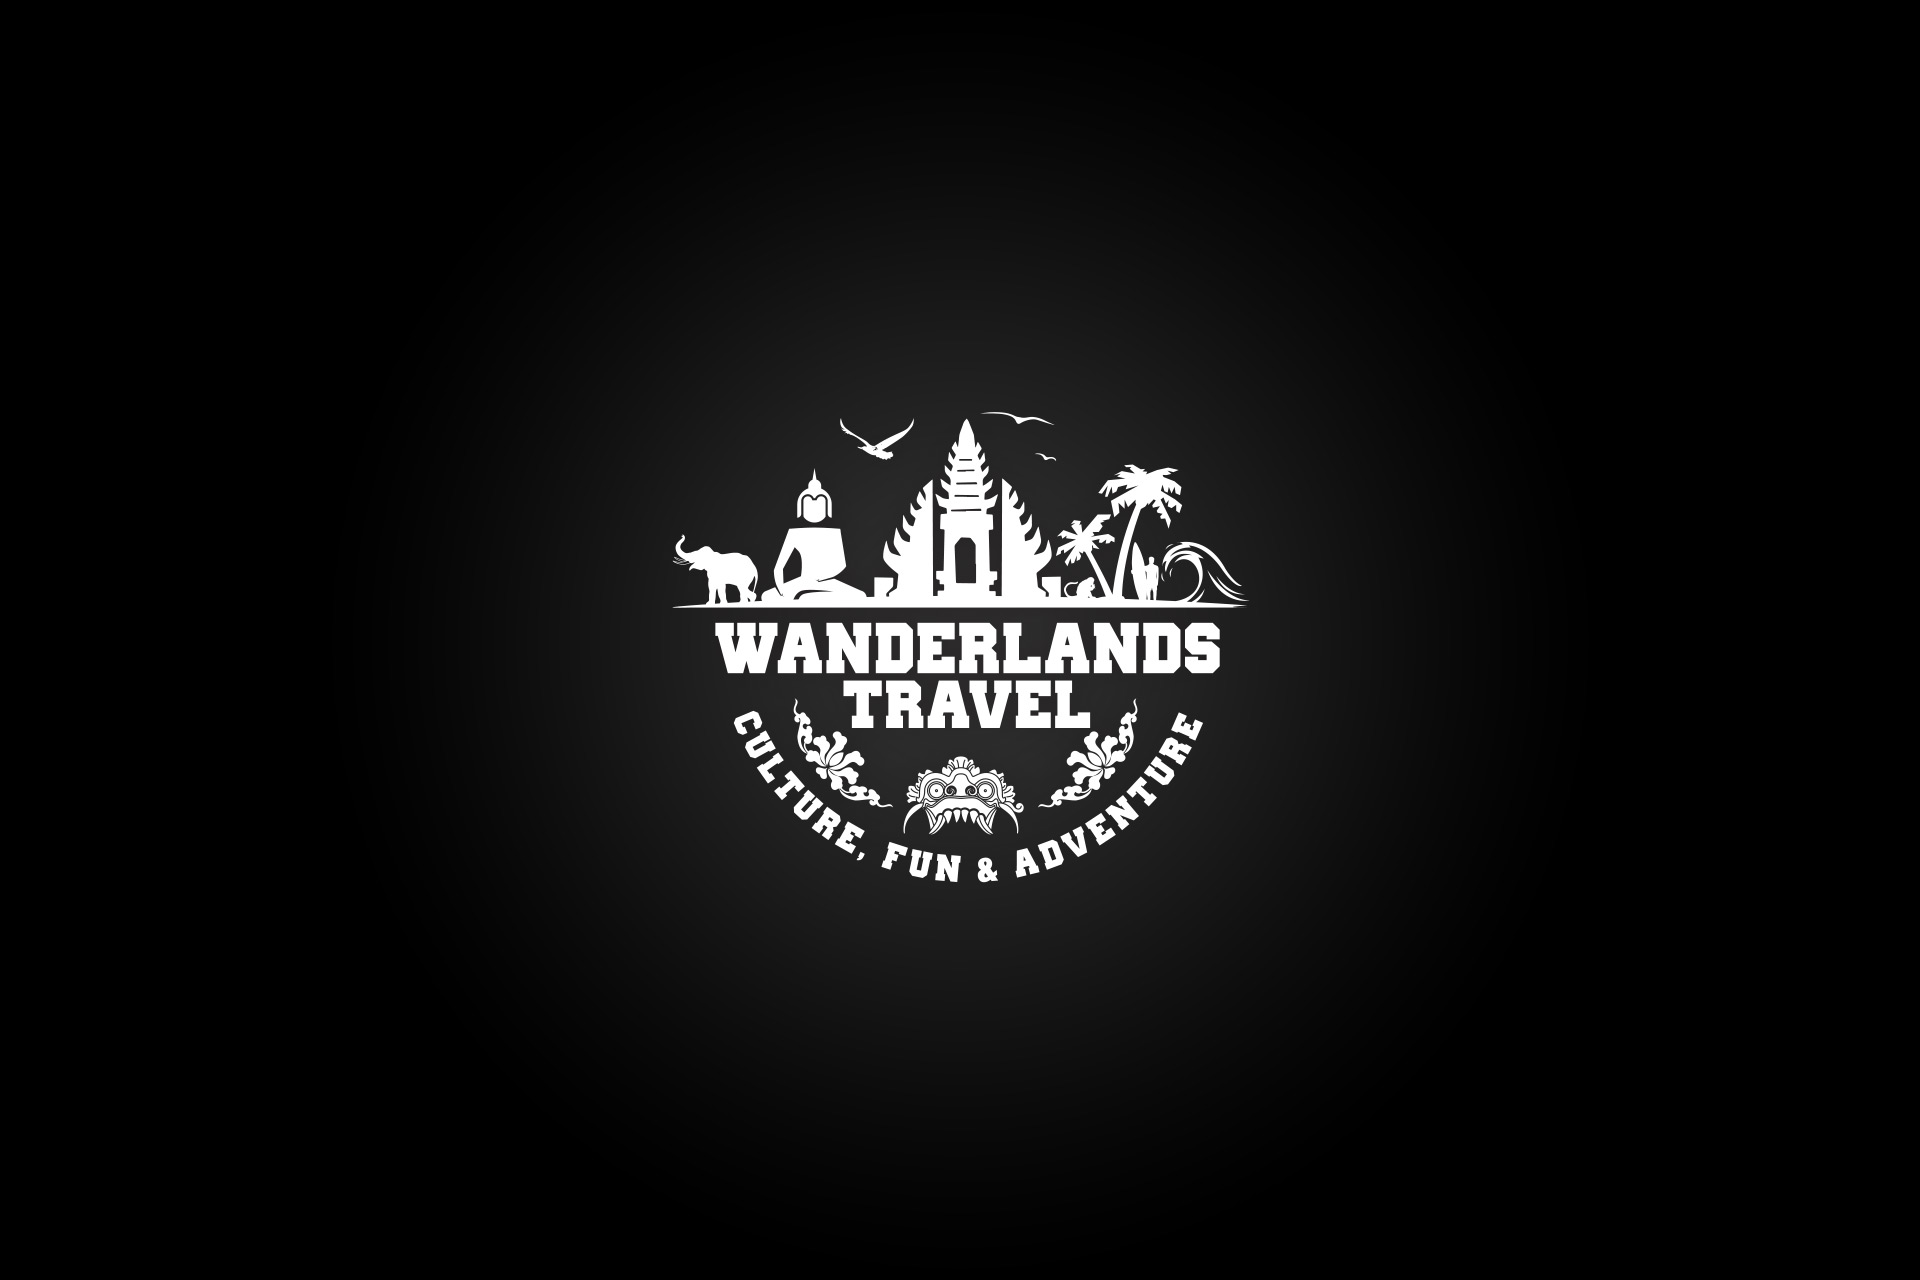 Wanderlands Travel